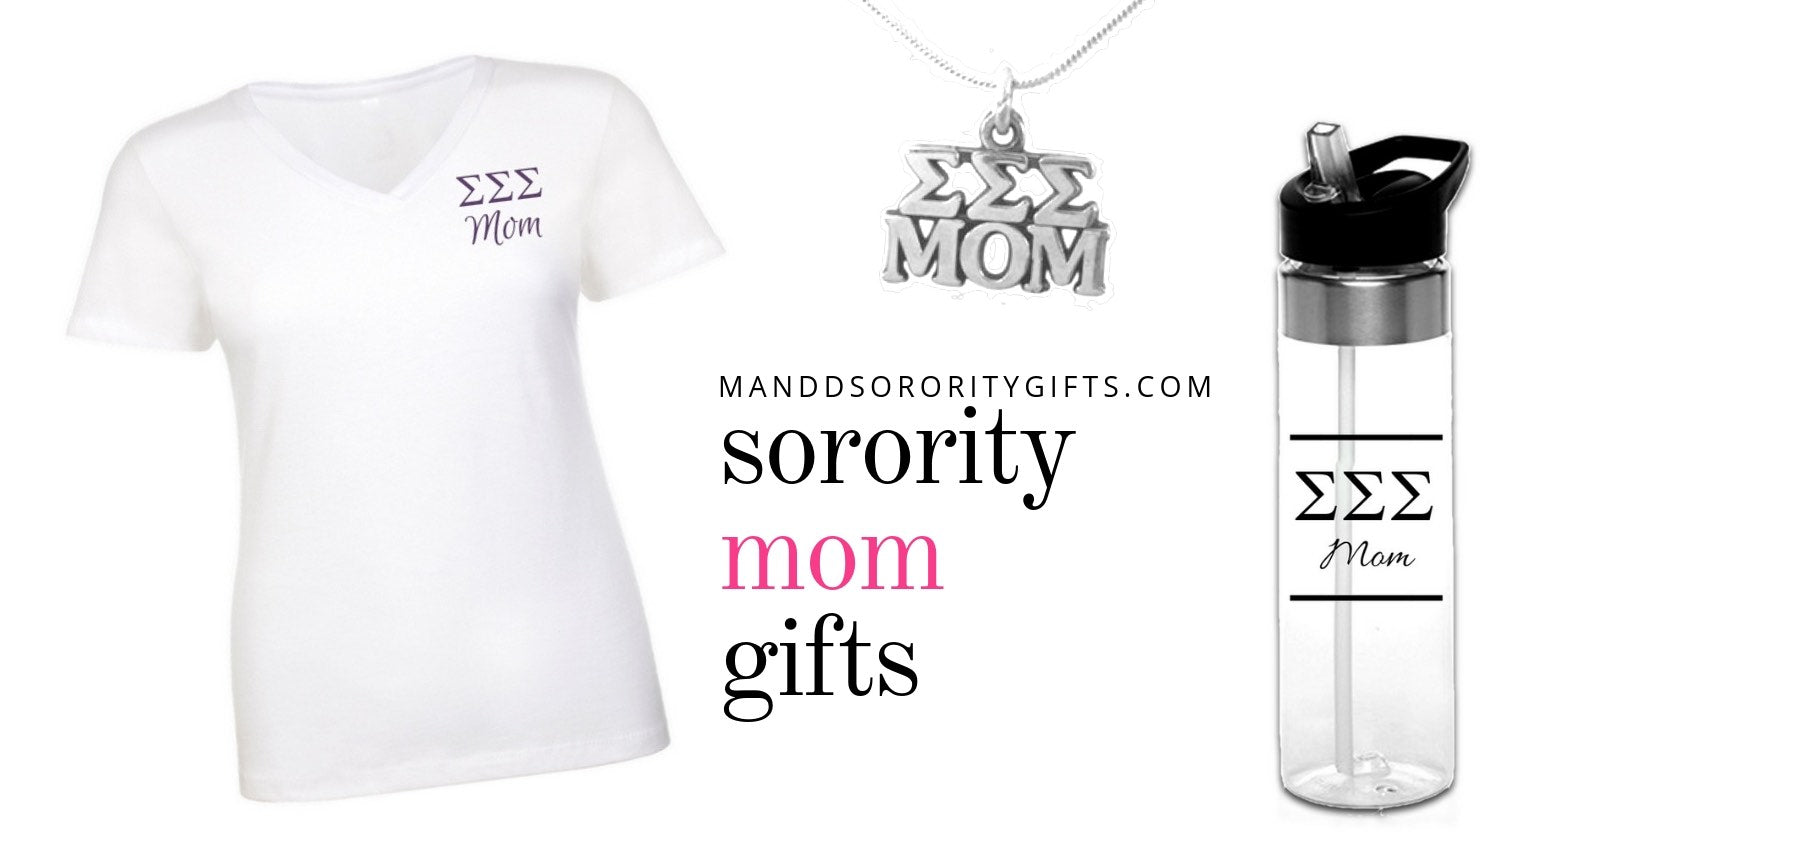 Tri Sigma Mom Gifts I 12 Reasons Moms Are the Best